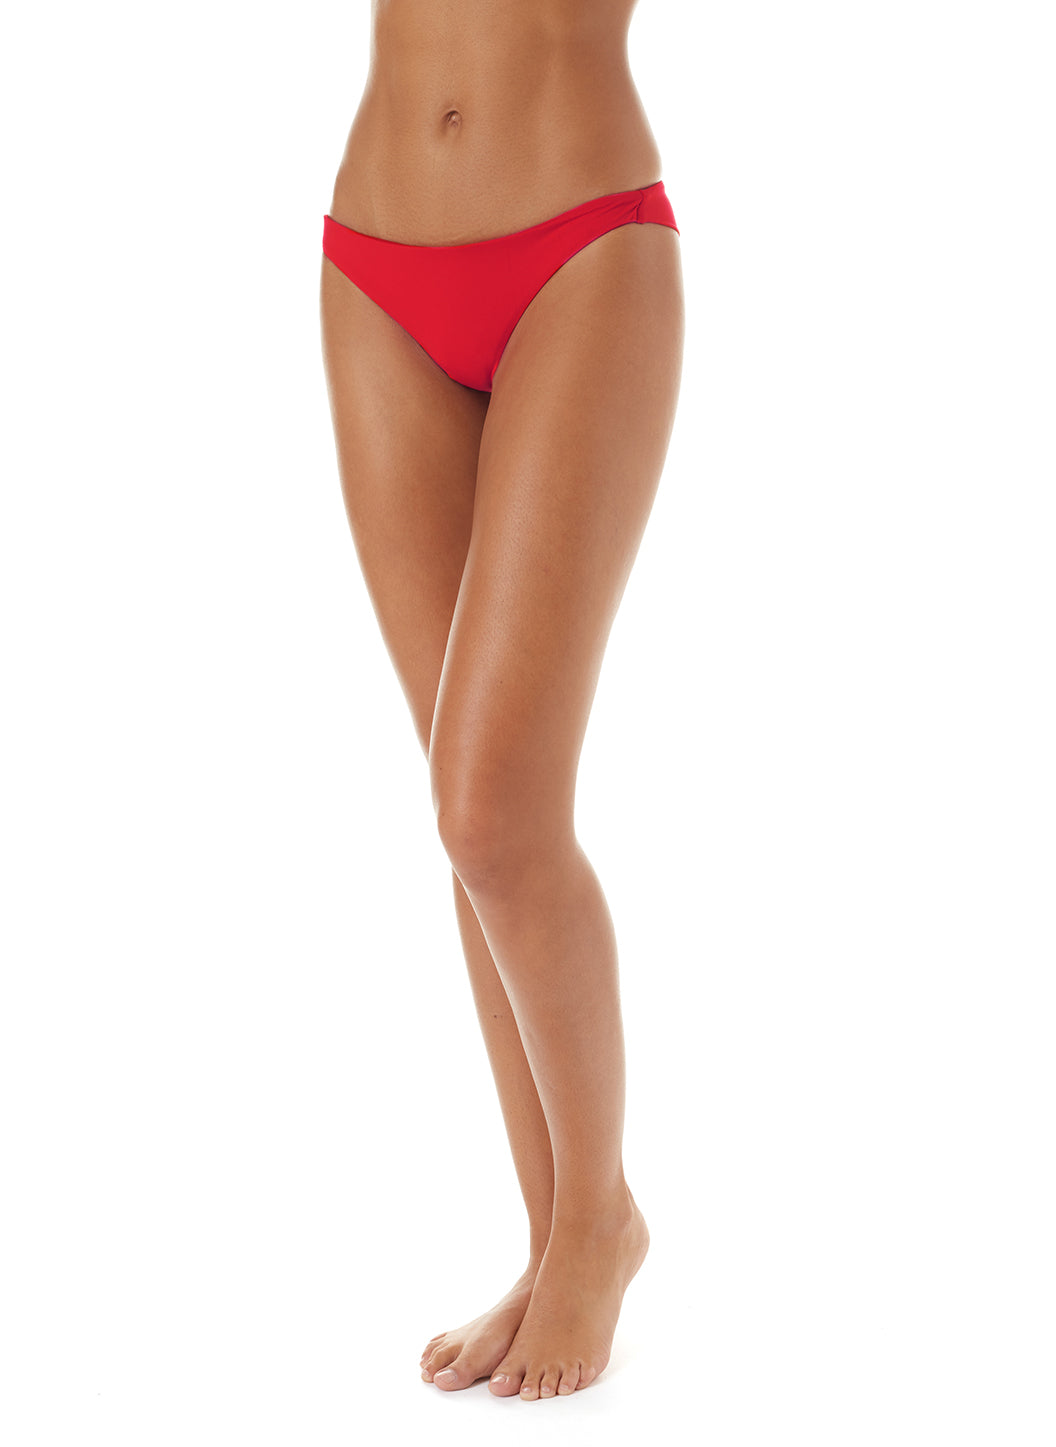 Exclusive Sisi Red Small Bikini Bottoms